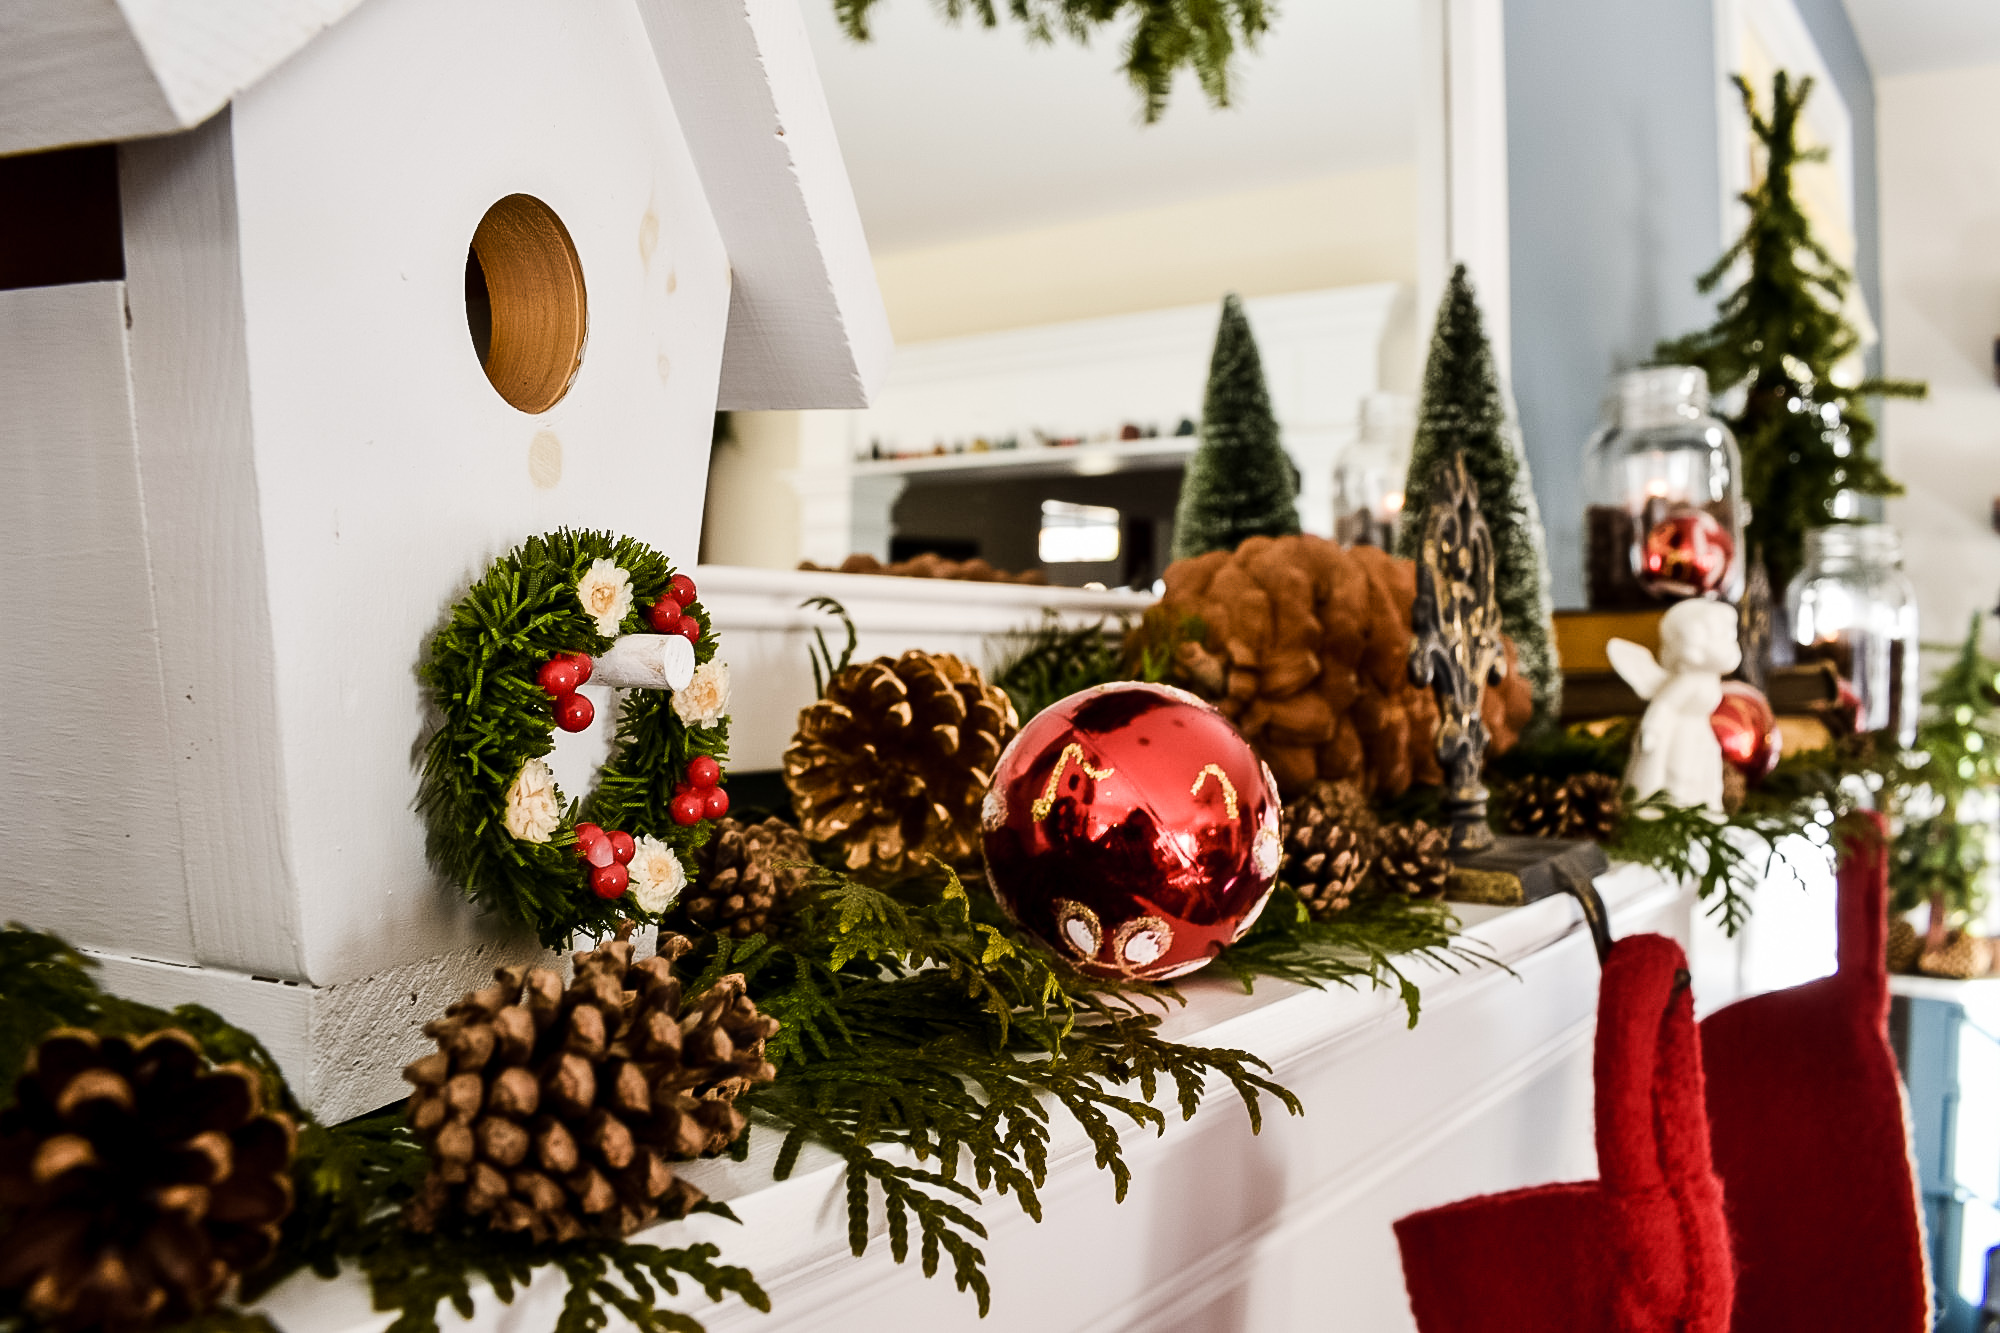 bird's house, pinecones, greenery and red ornaments on a Christmas mantel